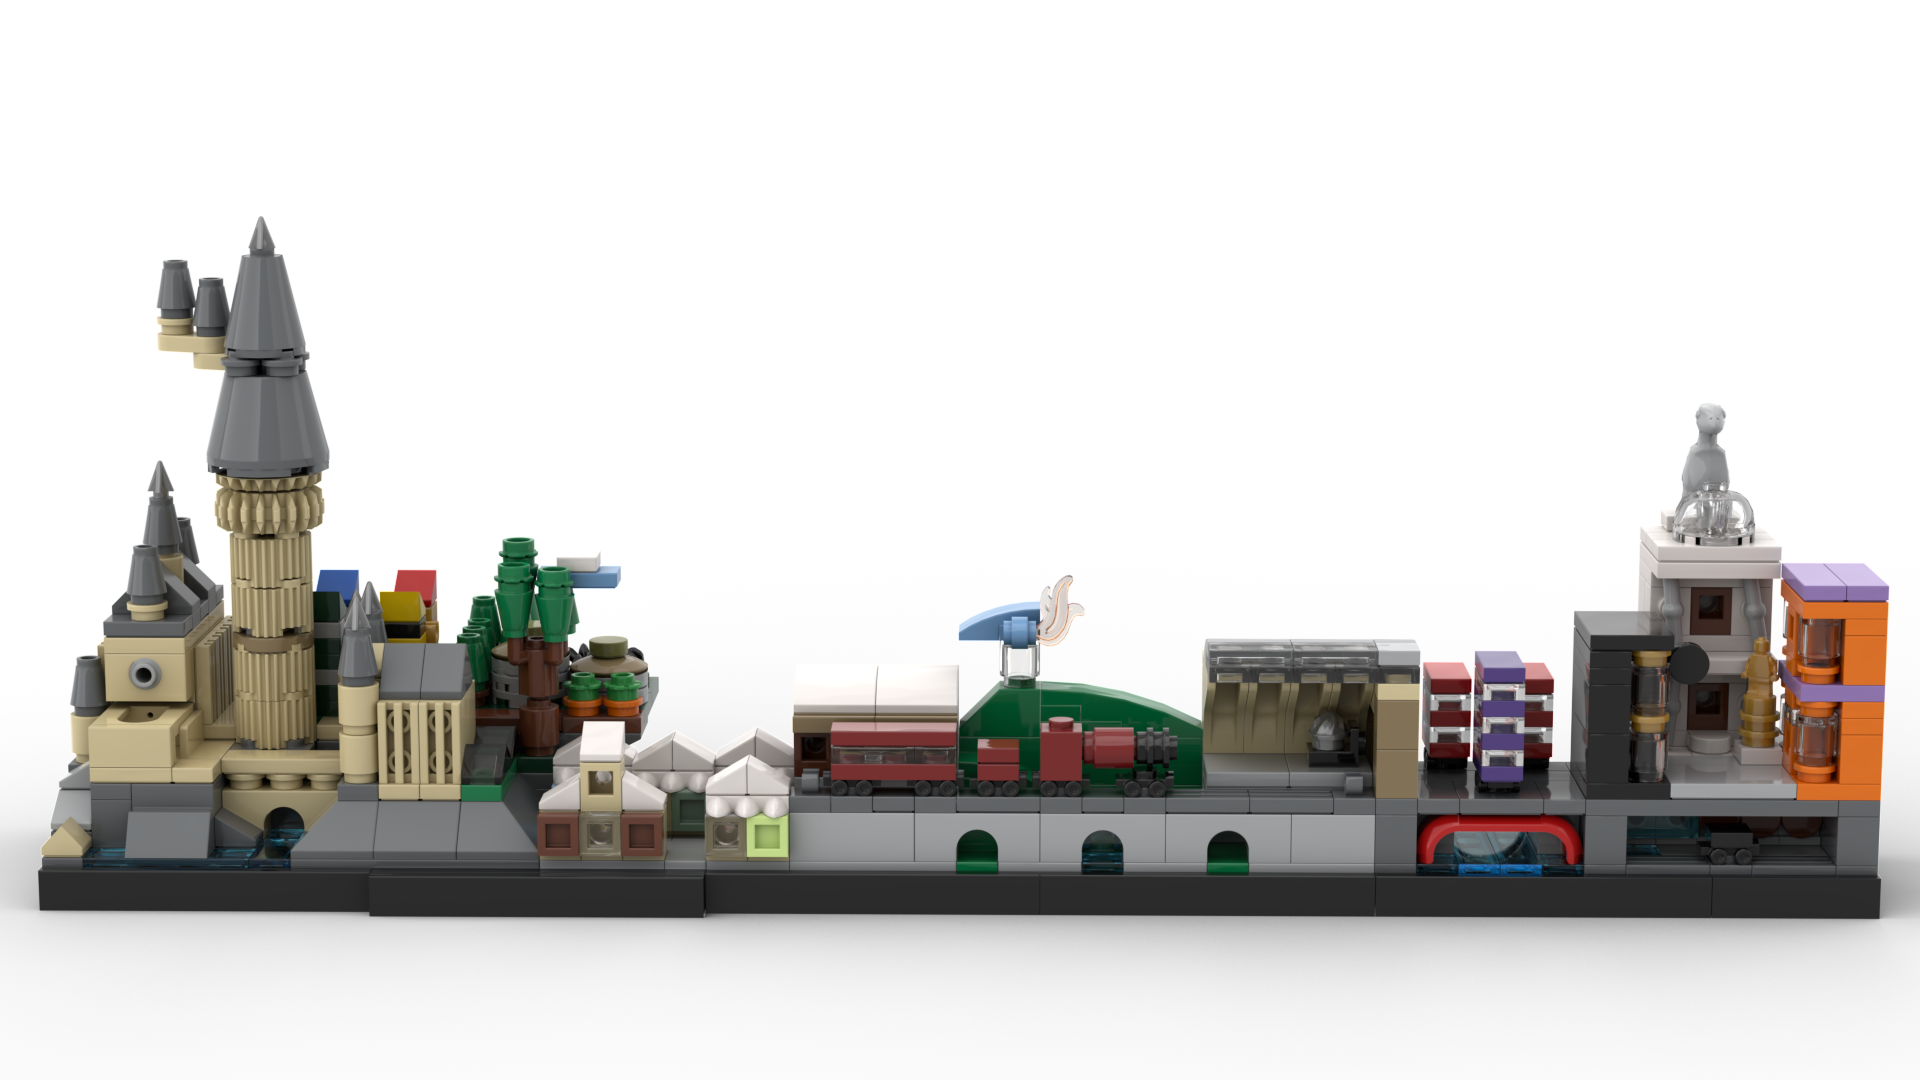 Movie inspired lego skylines by matteo mobili brick for Mobili harry potter